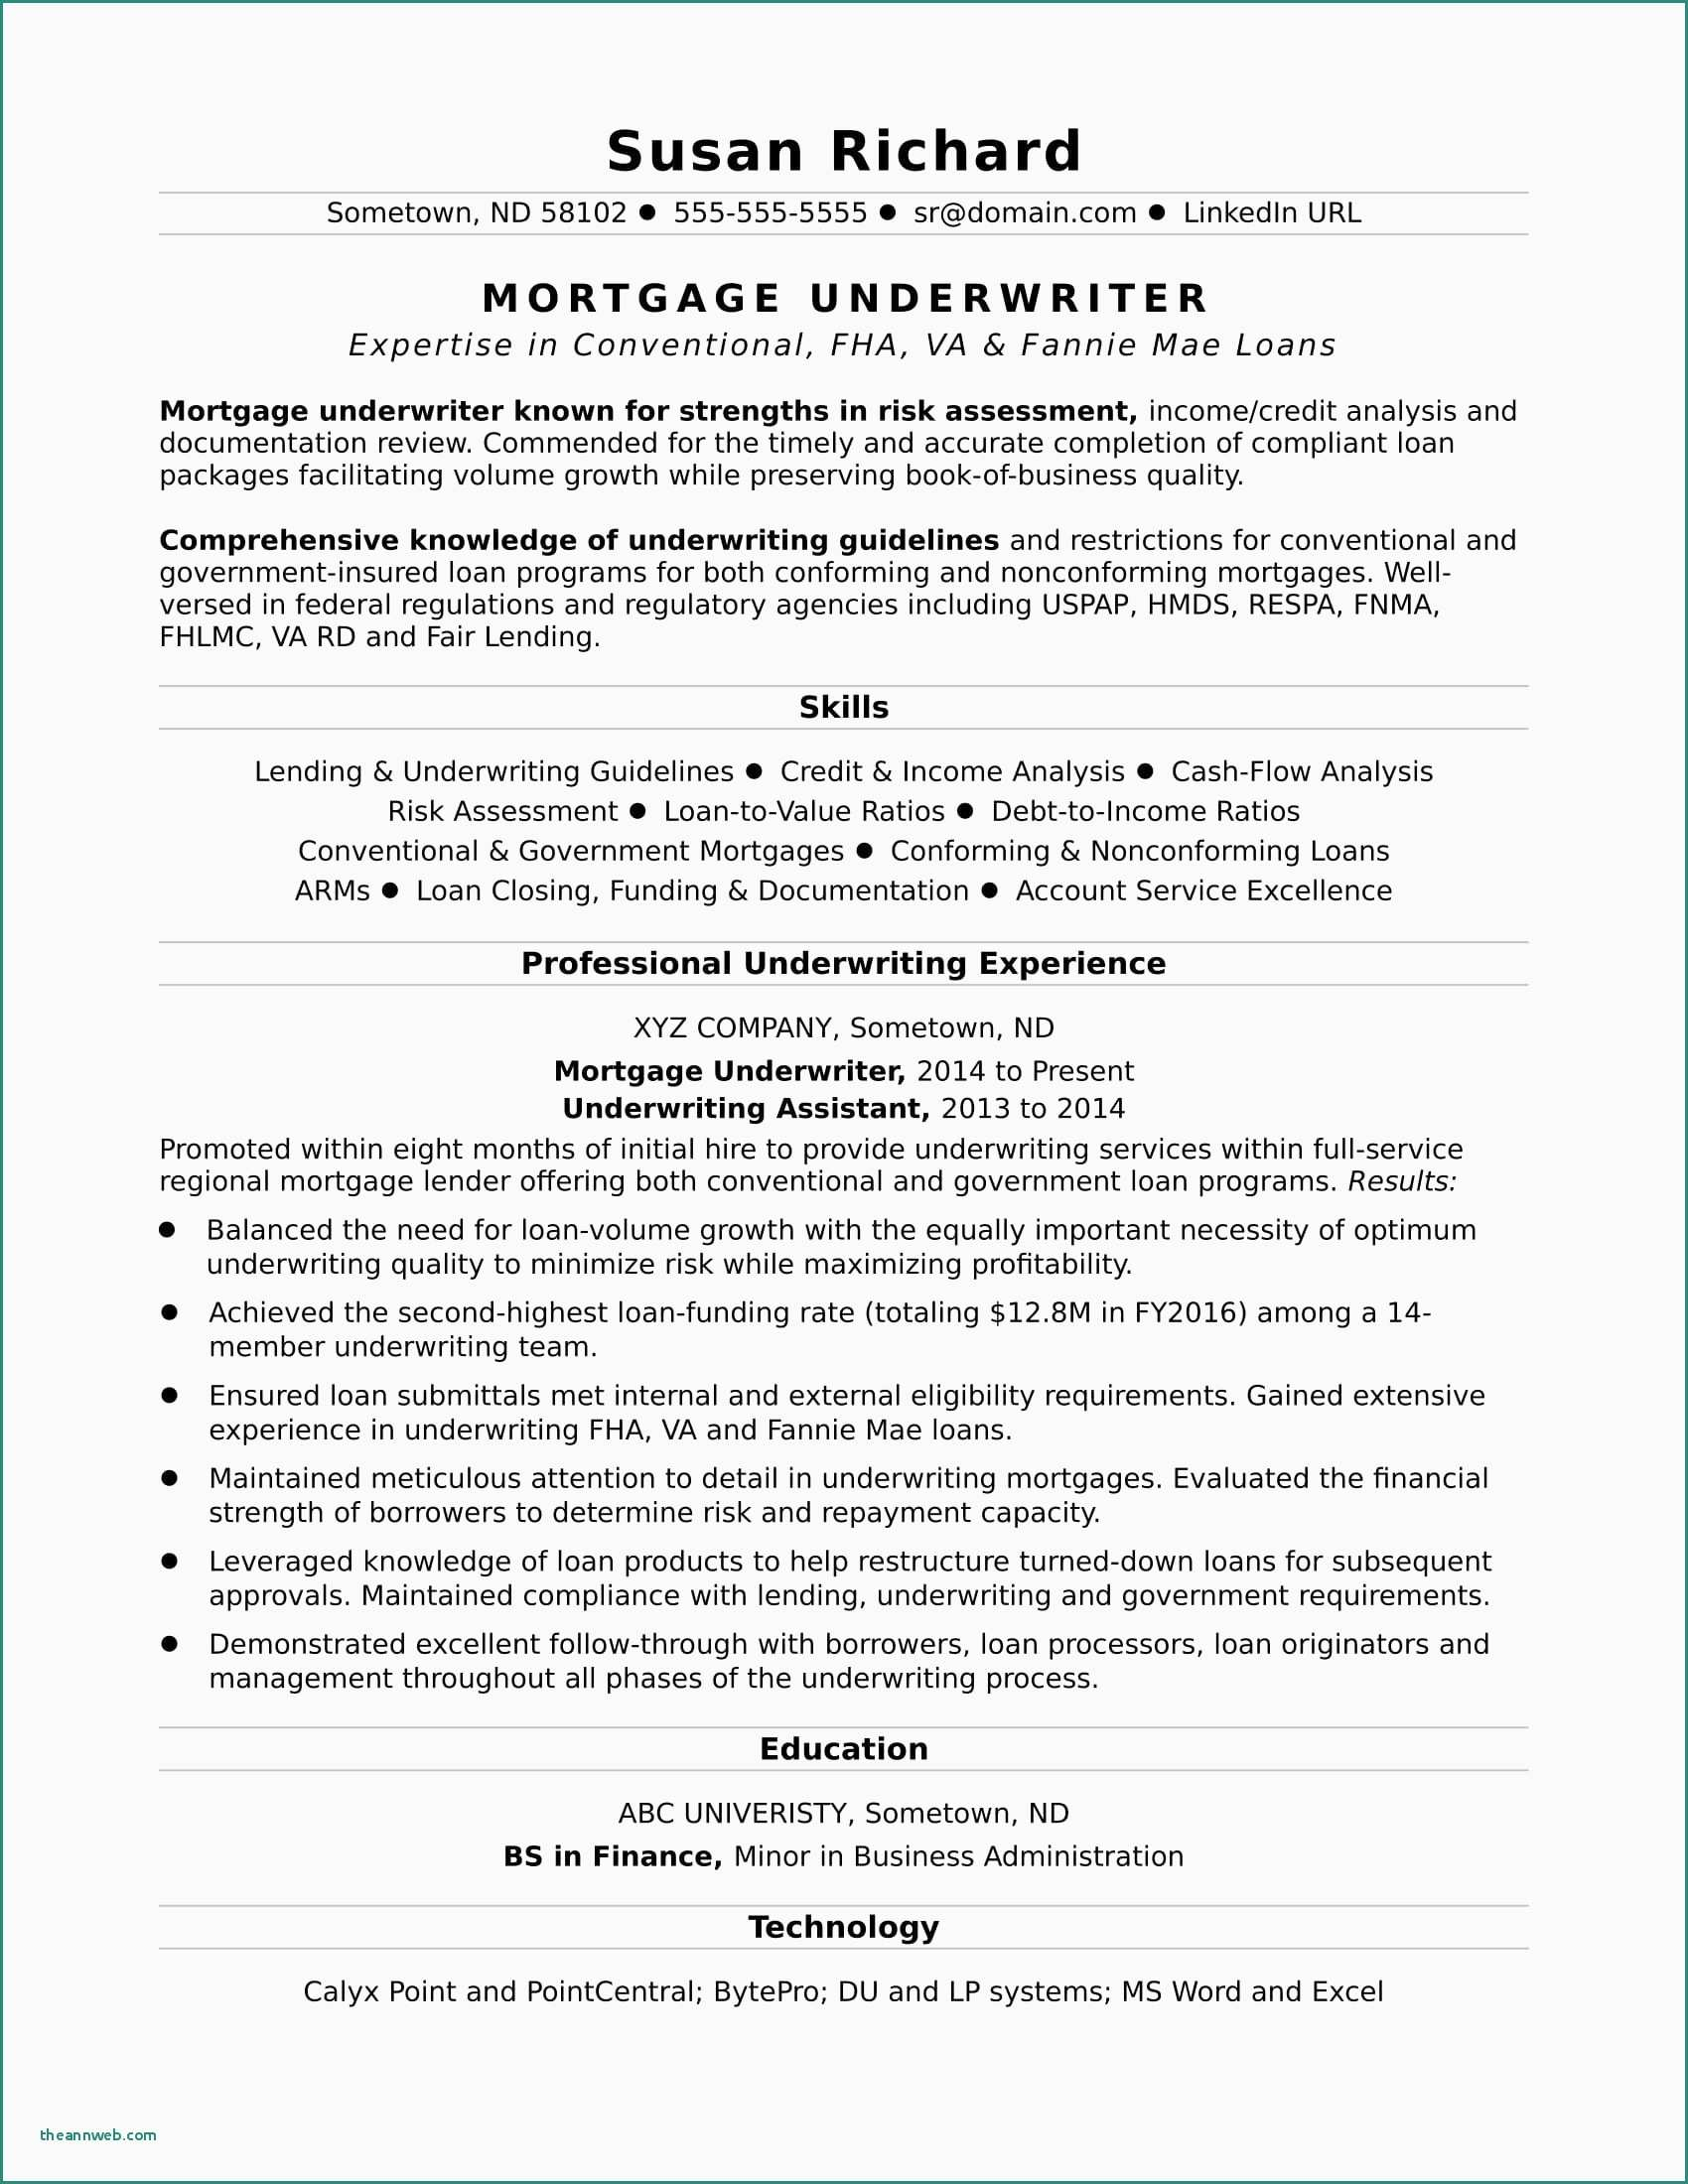 Electrical Engineer Entry Level Resume - Sample Resume for Mba Finance with Experience 37 New Mba Sample